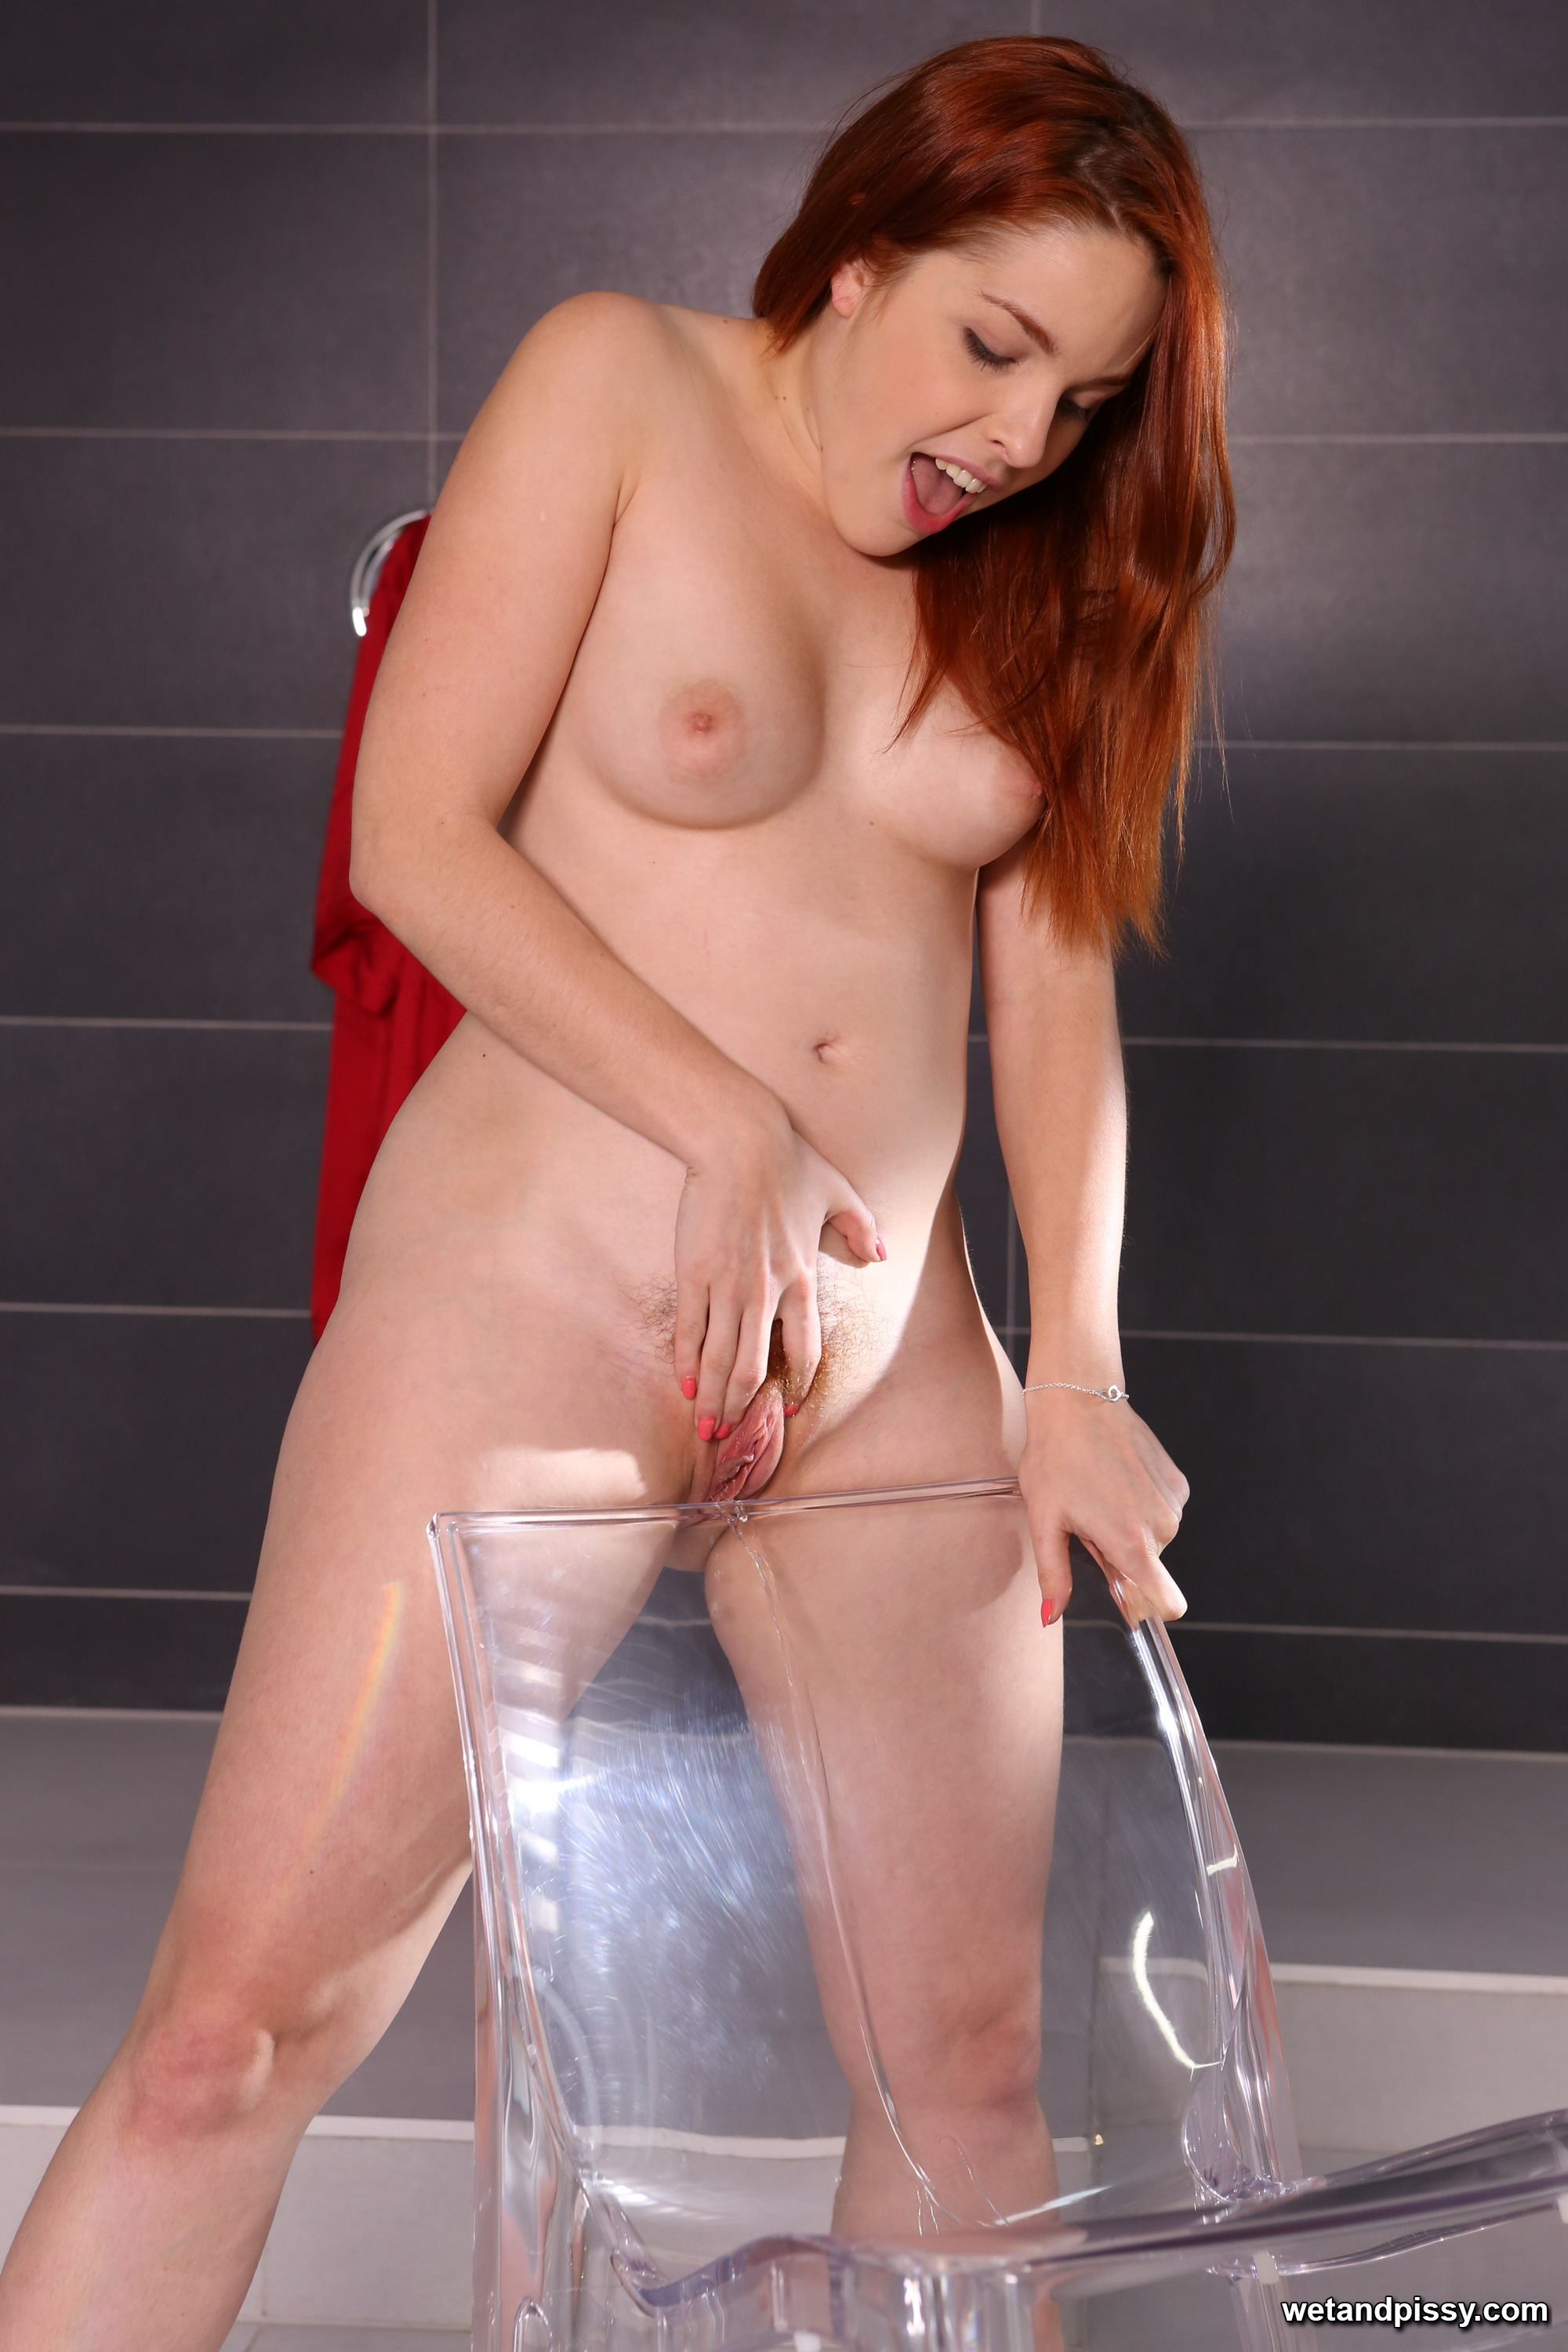 Stunning redhead tries to pee over her own body